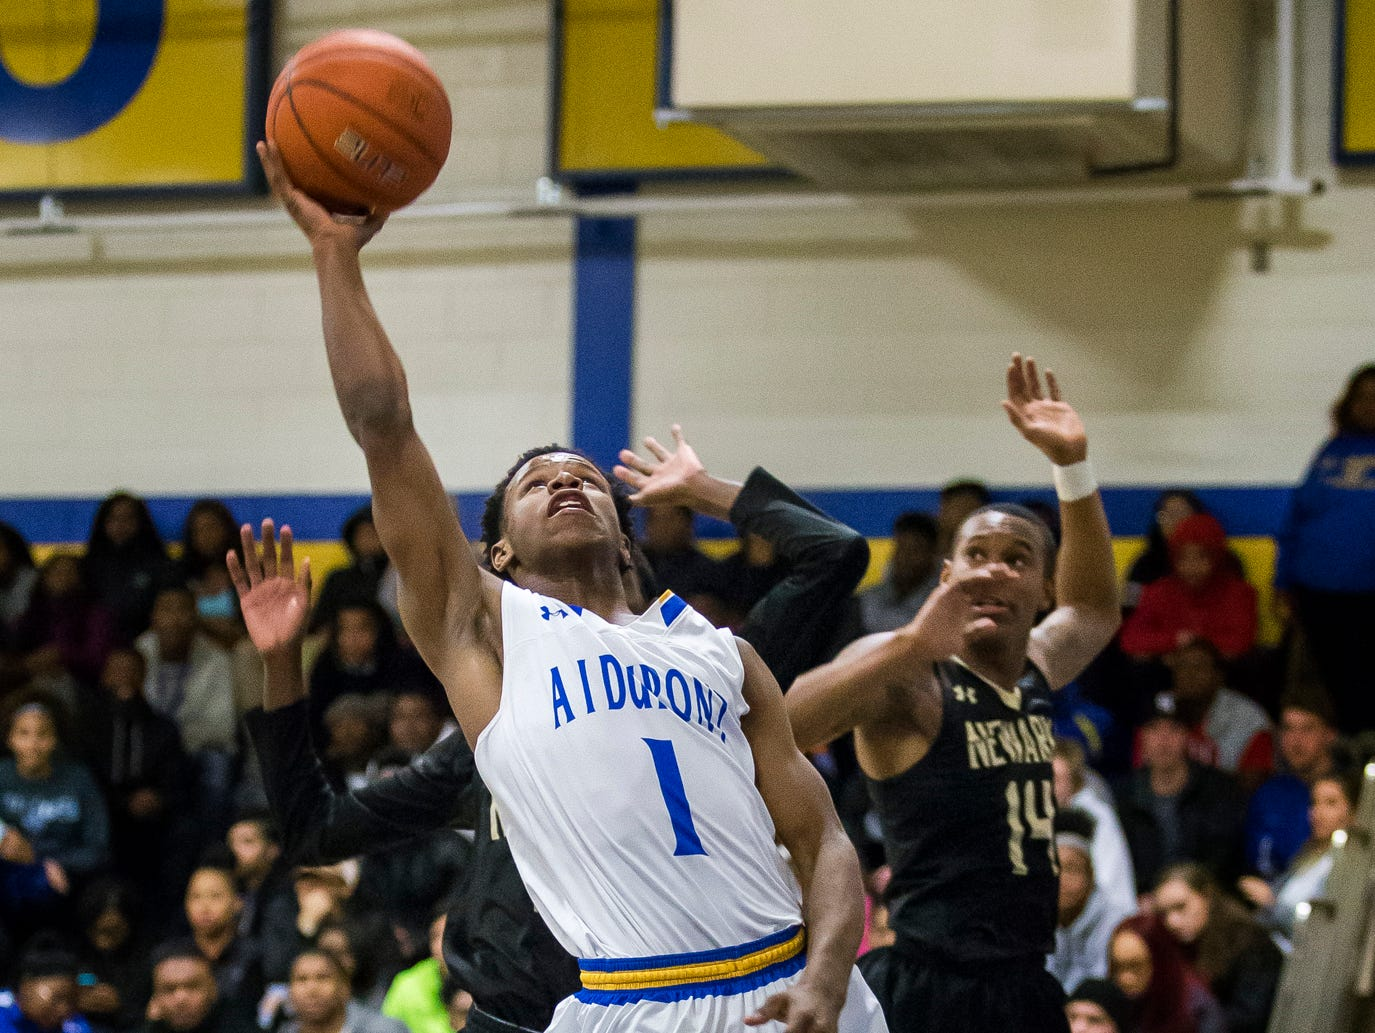 A.I.'s Julius Inge puts up a shot in the fourth quarter of Newark's 52-51 win over A.I. duPont High School in Greenville on Tuesday evening.